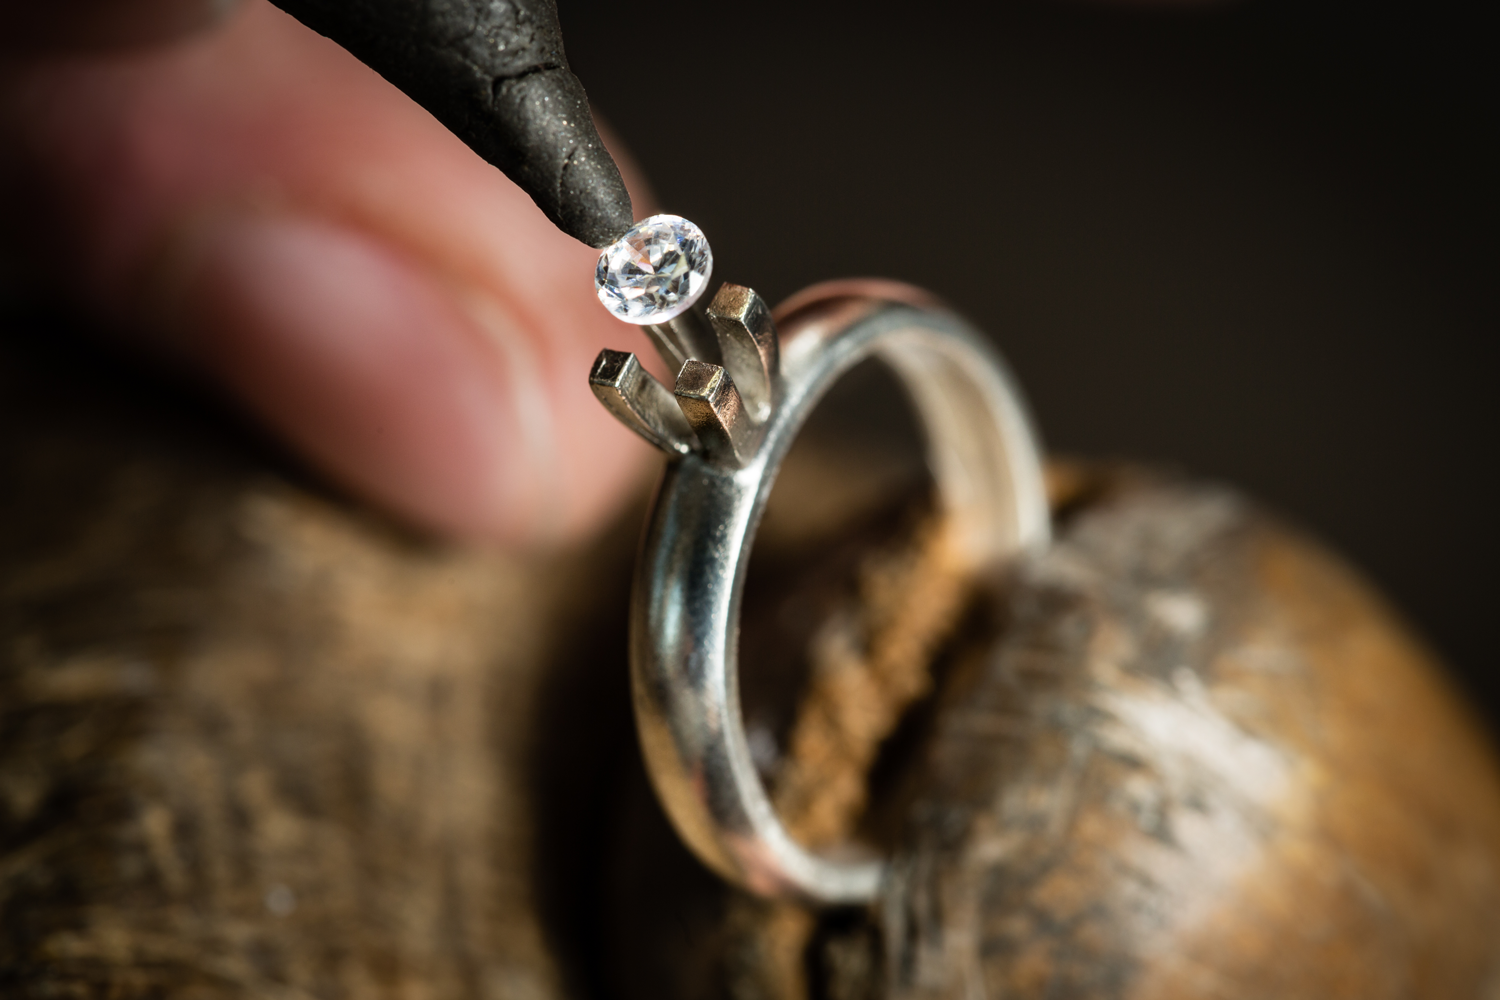 REPAIRS - Ambassador Diamond Jewelers offers full service jewelry and watch repair. Our goal is to make your piece better than new, and do it quickly and expertly while you watch, wait or shop. Don't just settle for fixed, when you can have it flawless.